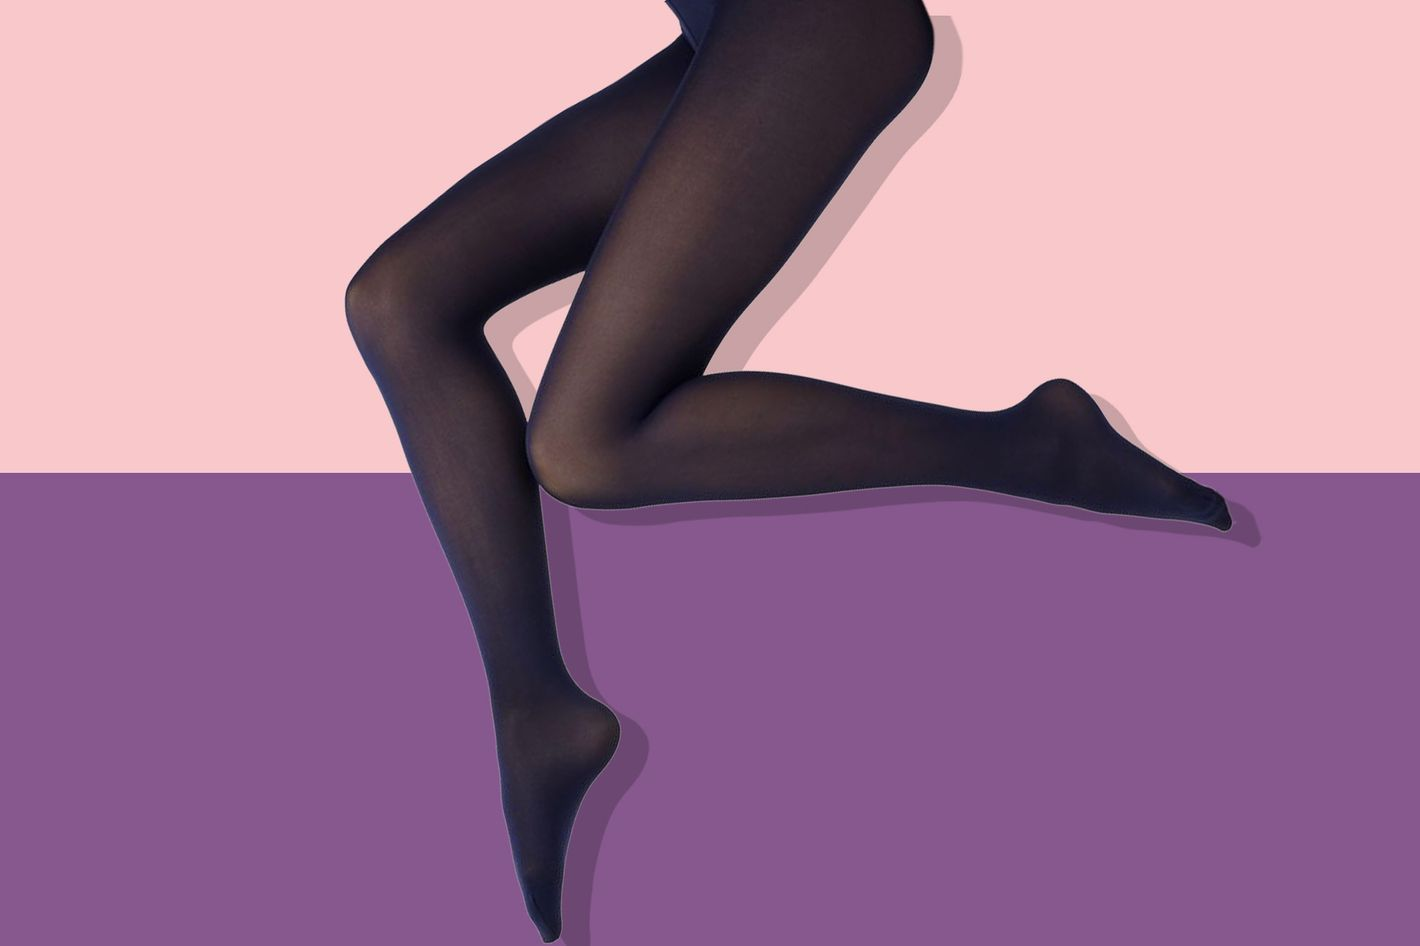 Wolford pantyhose pictures